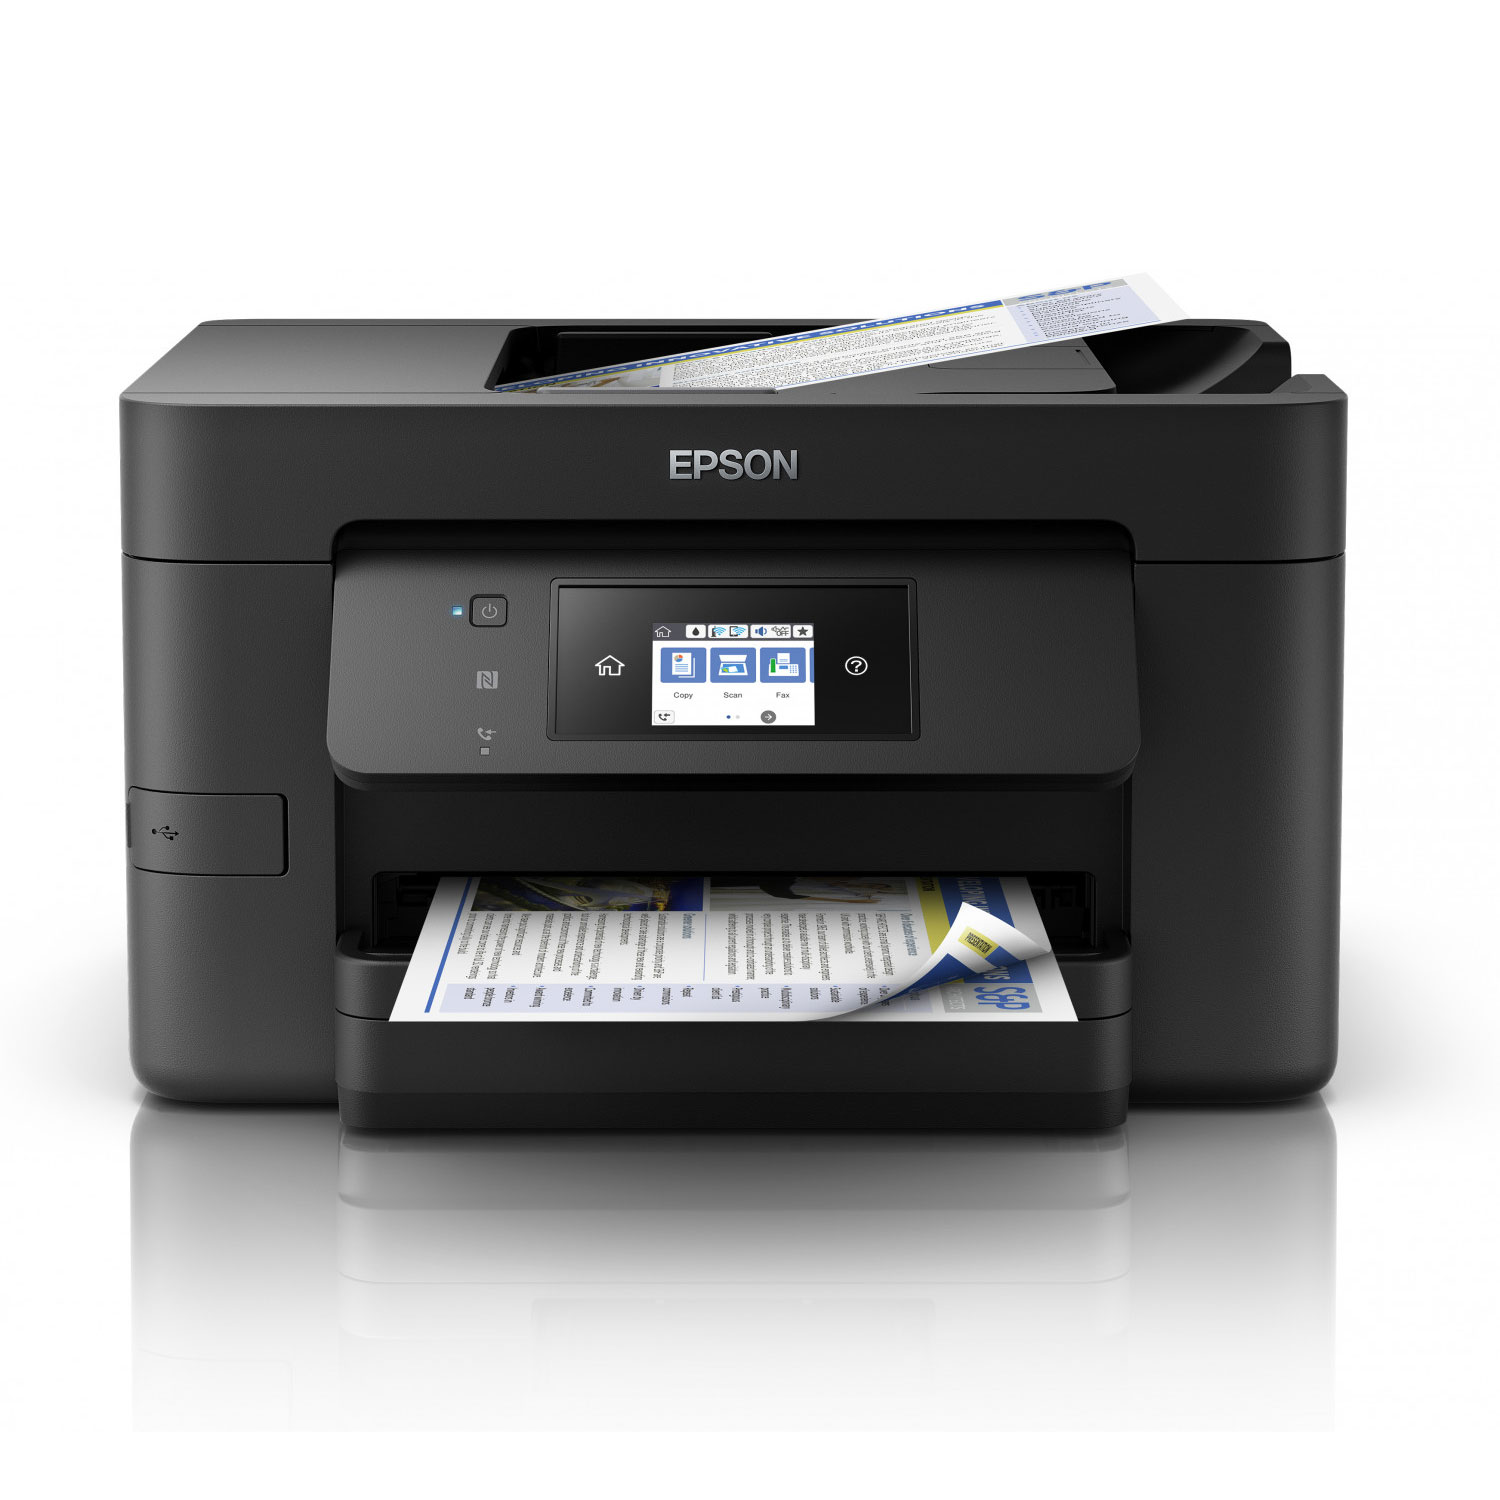 epson workforce wf 3720dwf imprimante multifonction epson sur. Black Bedroom Furniture Sets. Home Design Ideas